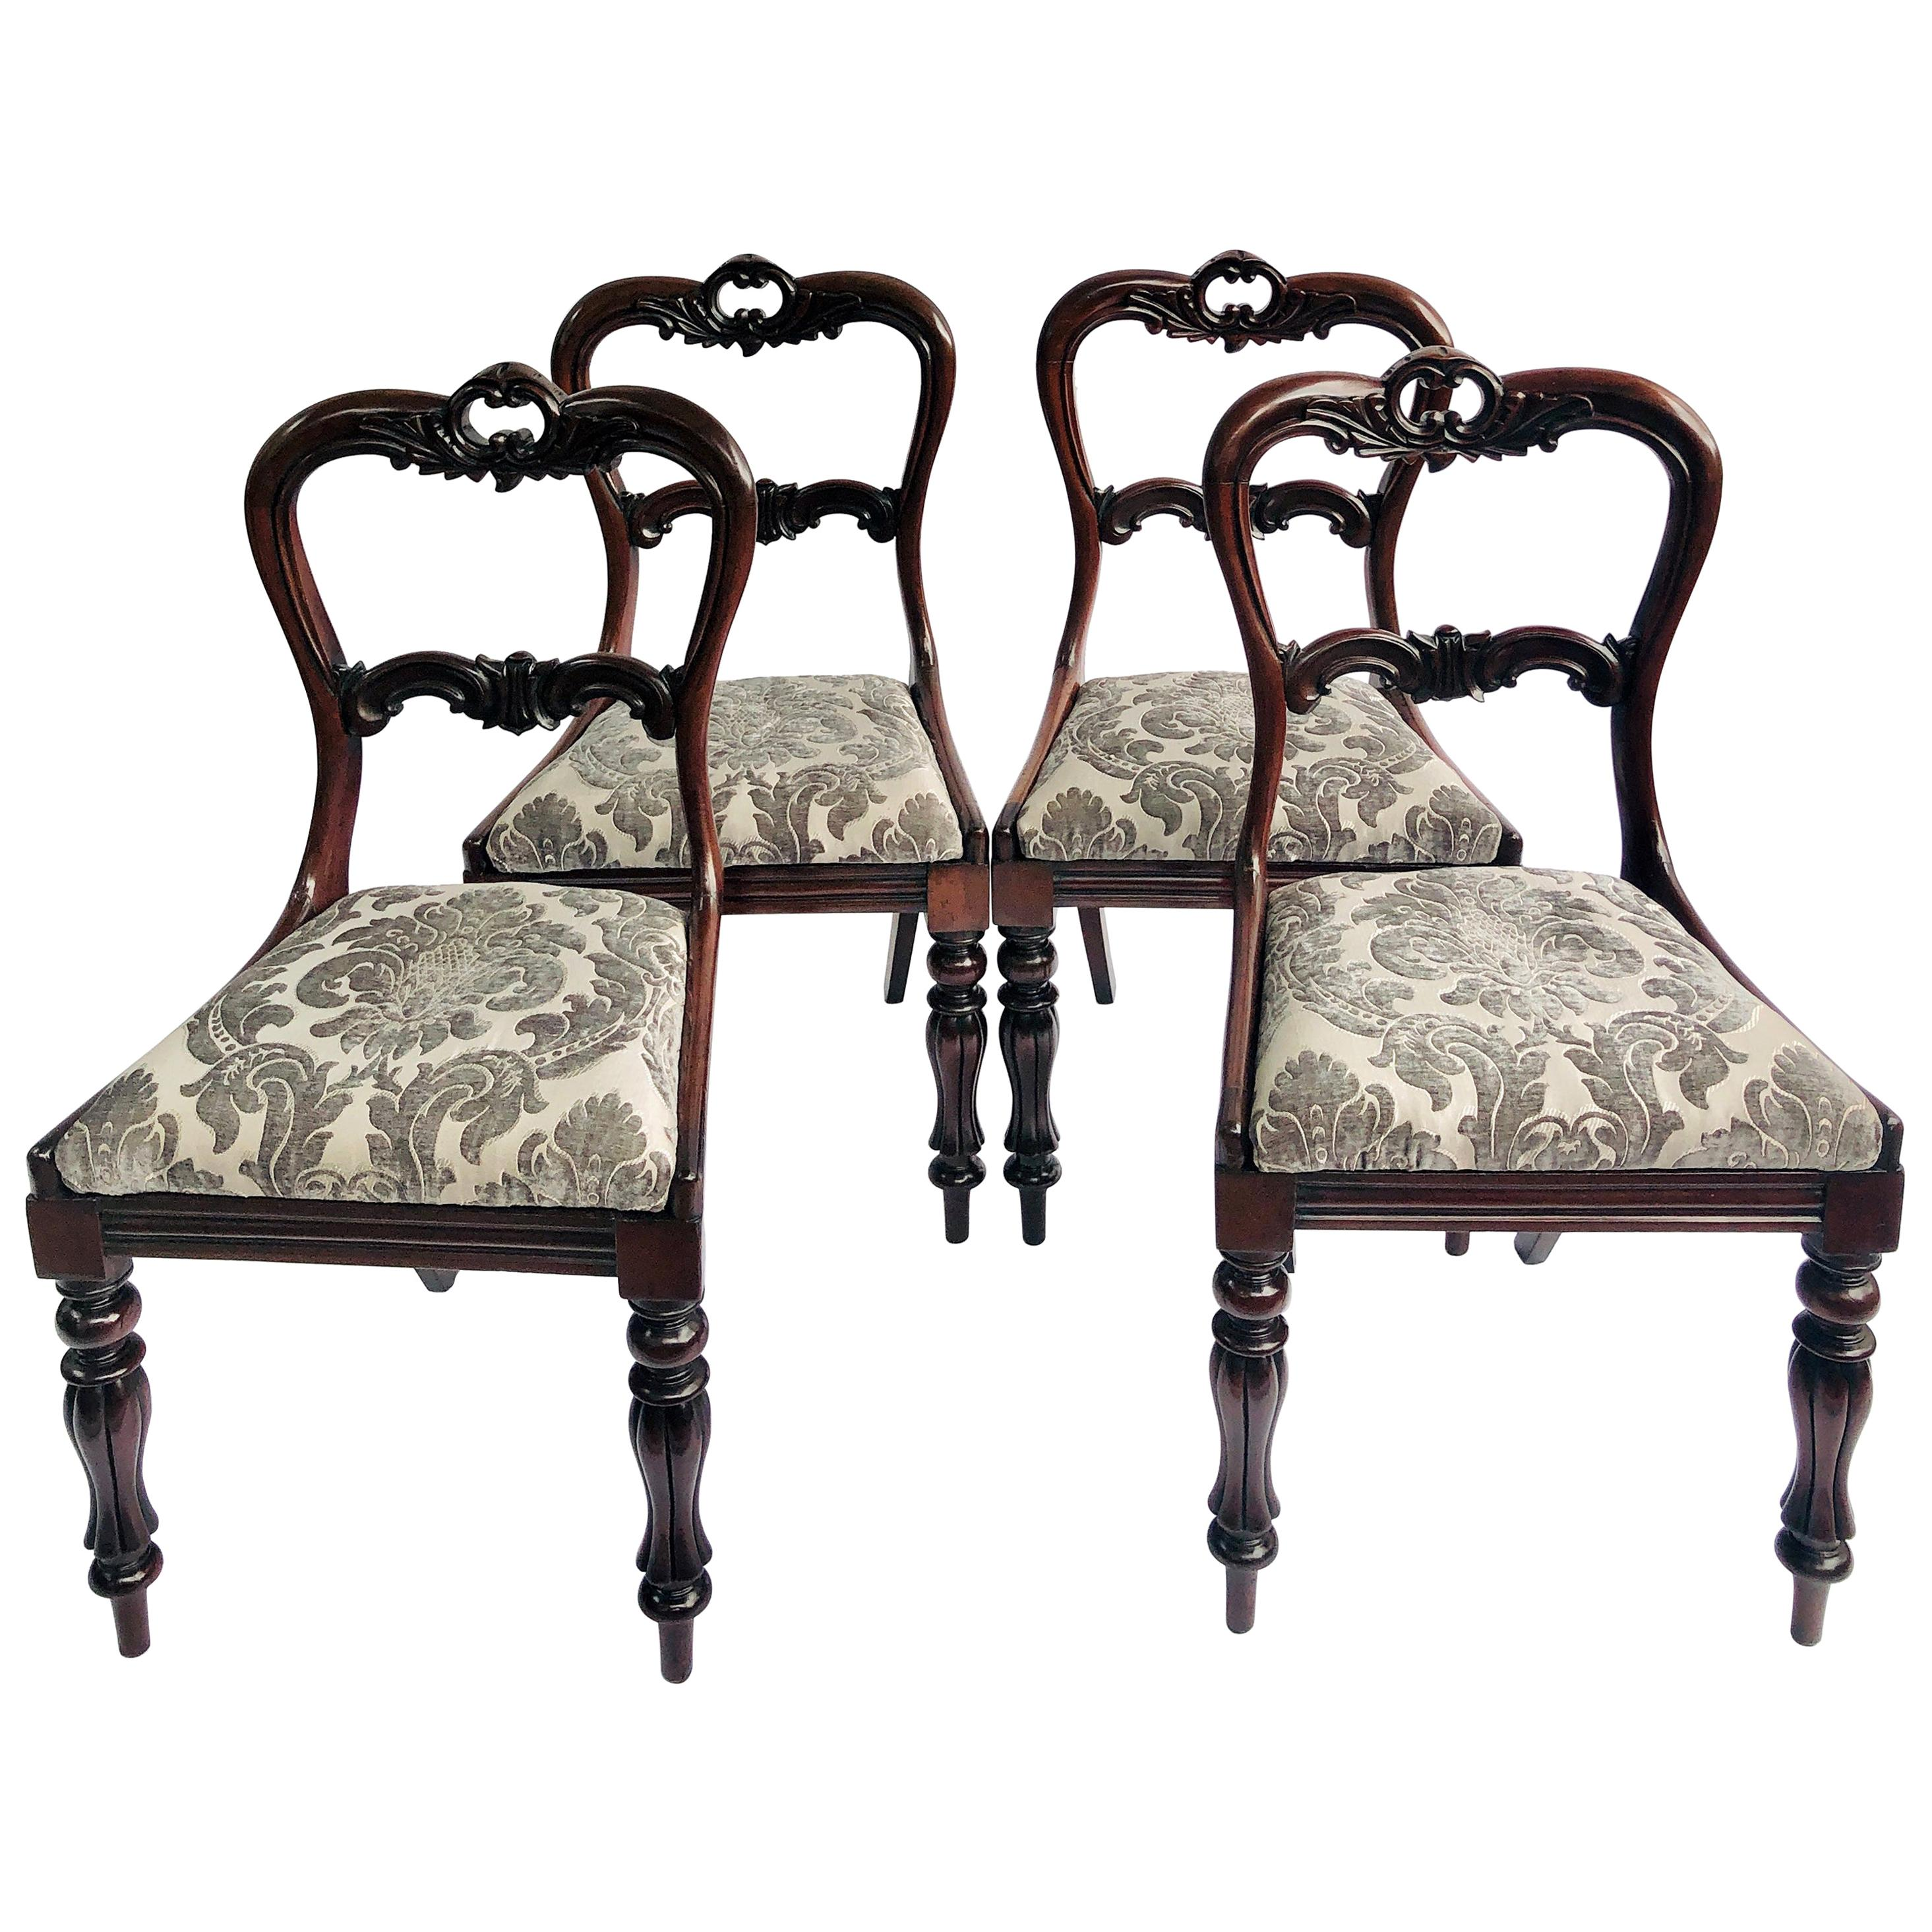 Fine Quality Set of 4 Antique William IV Carved Rosewood Dining Chairs